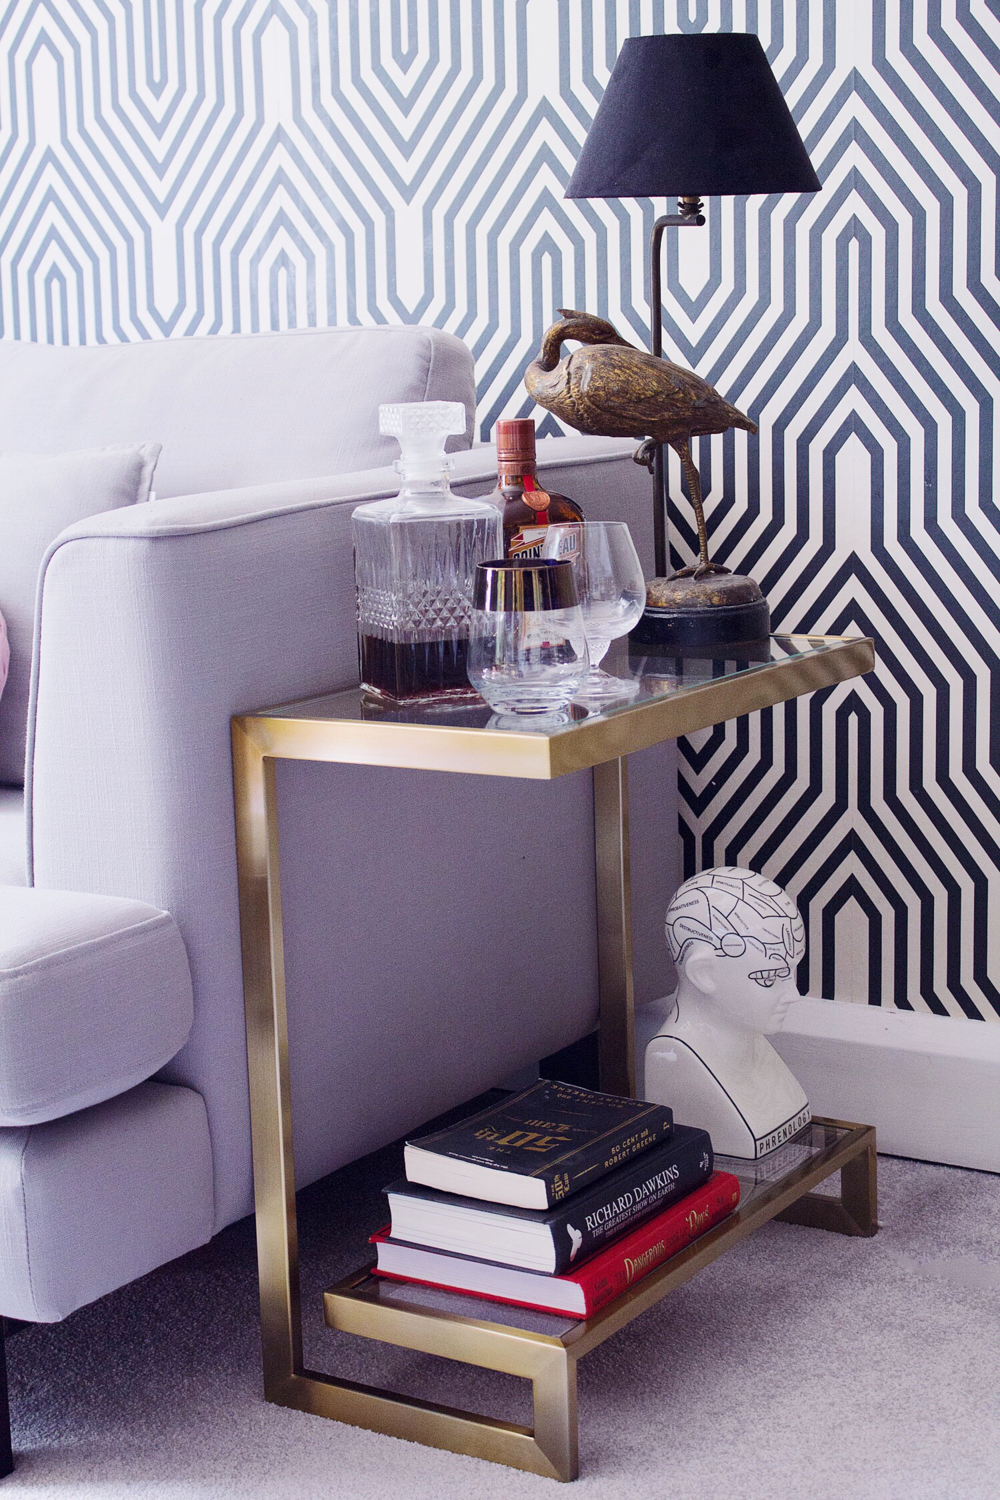 How to design your side table